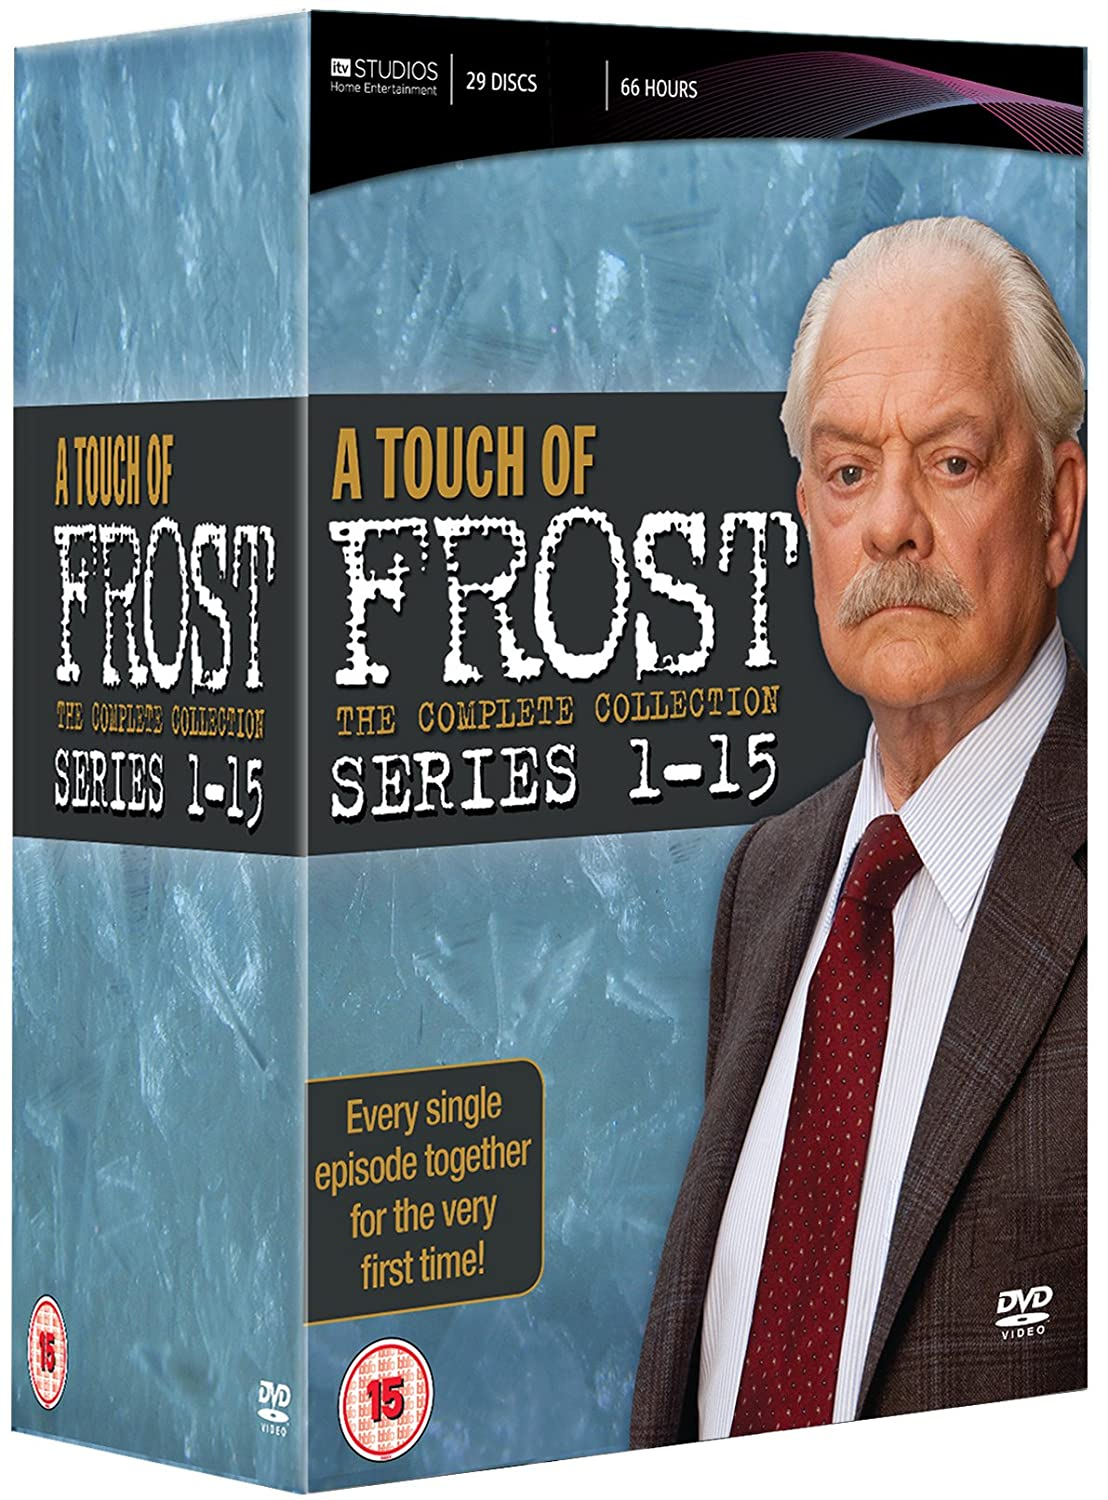 cheap a touch of frost dvd boxset